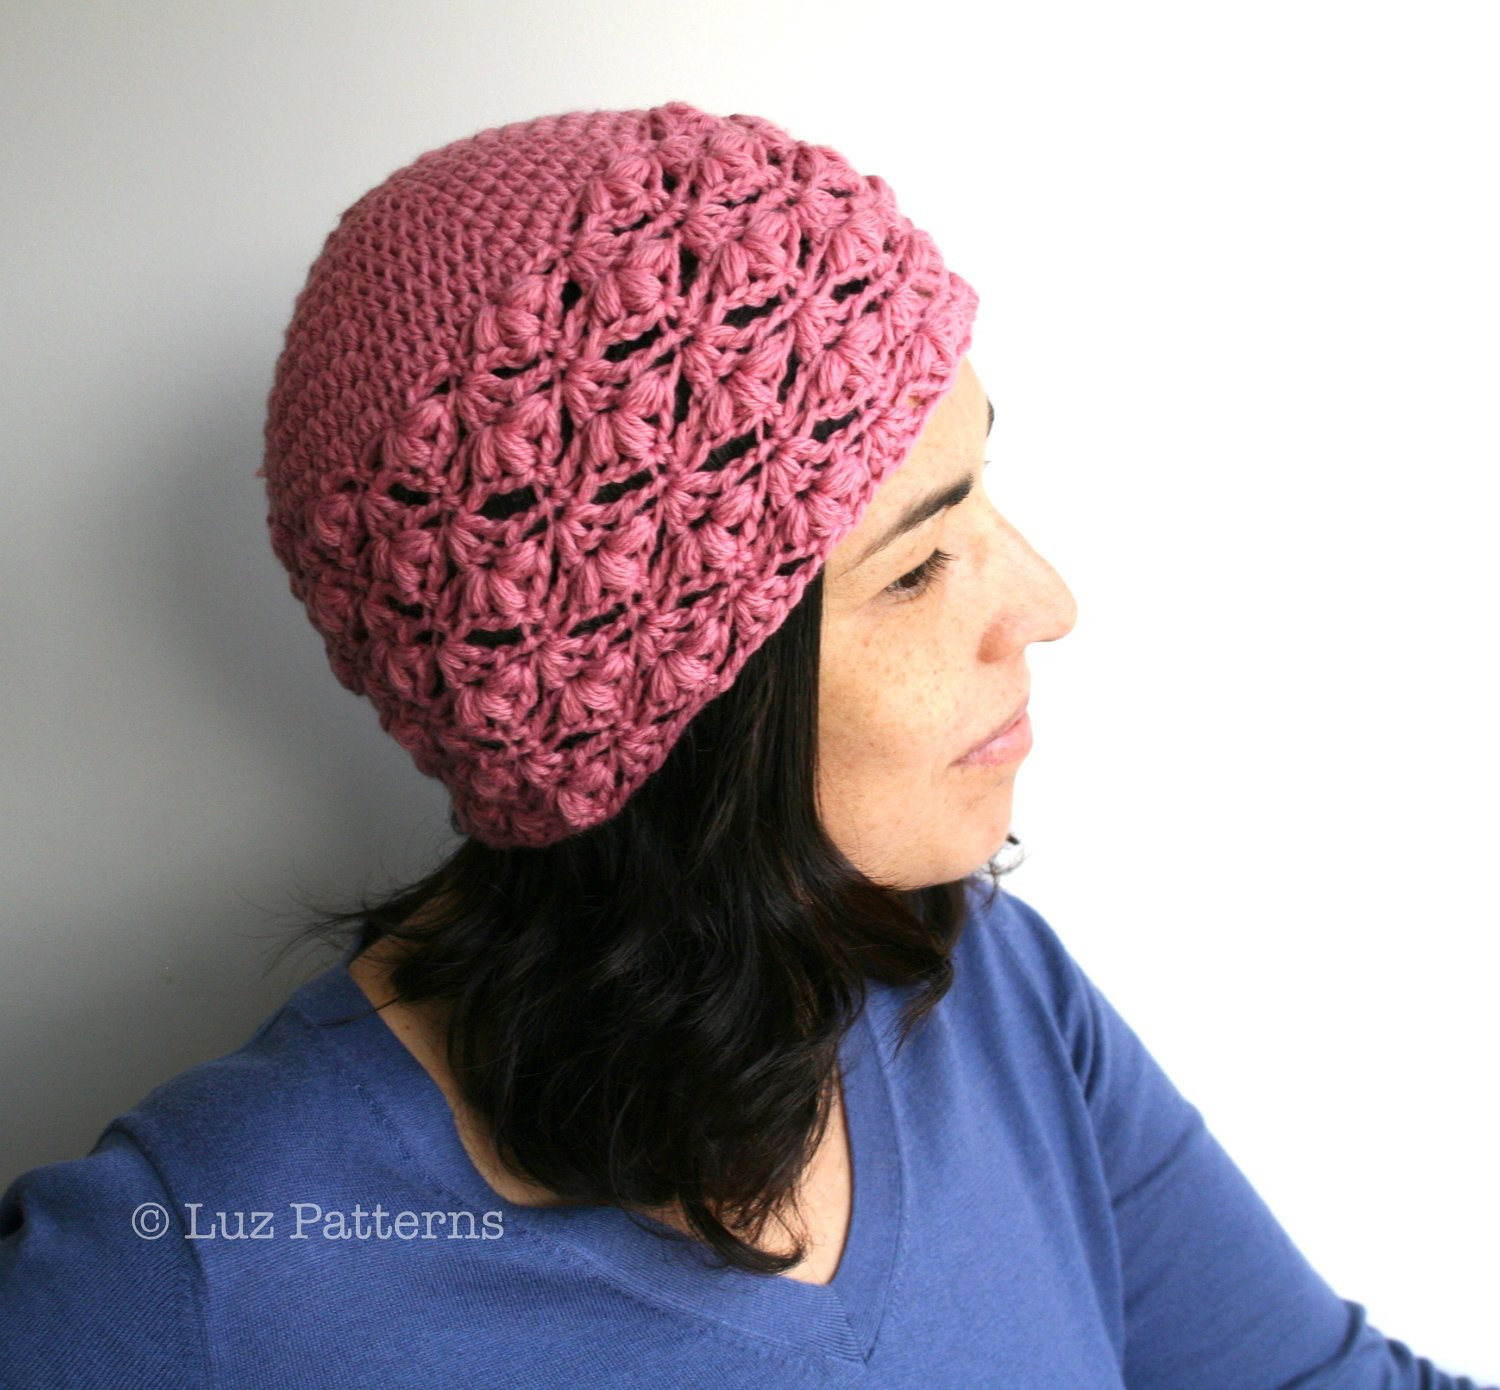 Womens Crochet Hat Patterns Luxury Crochet Hat Pattern Instant Download Crochet Women Beanie Of Luxury 50 Photos Womens Crochet Hat Patterns